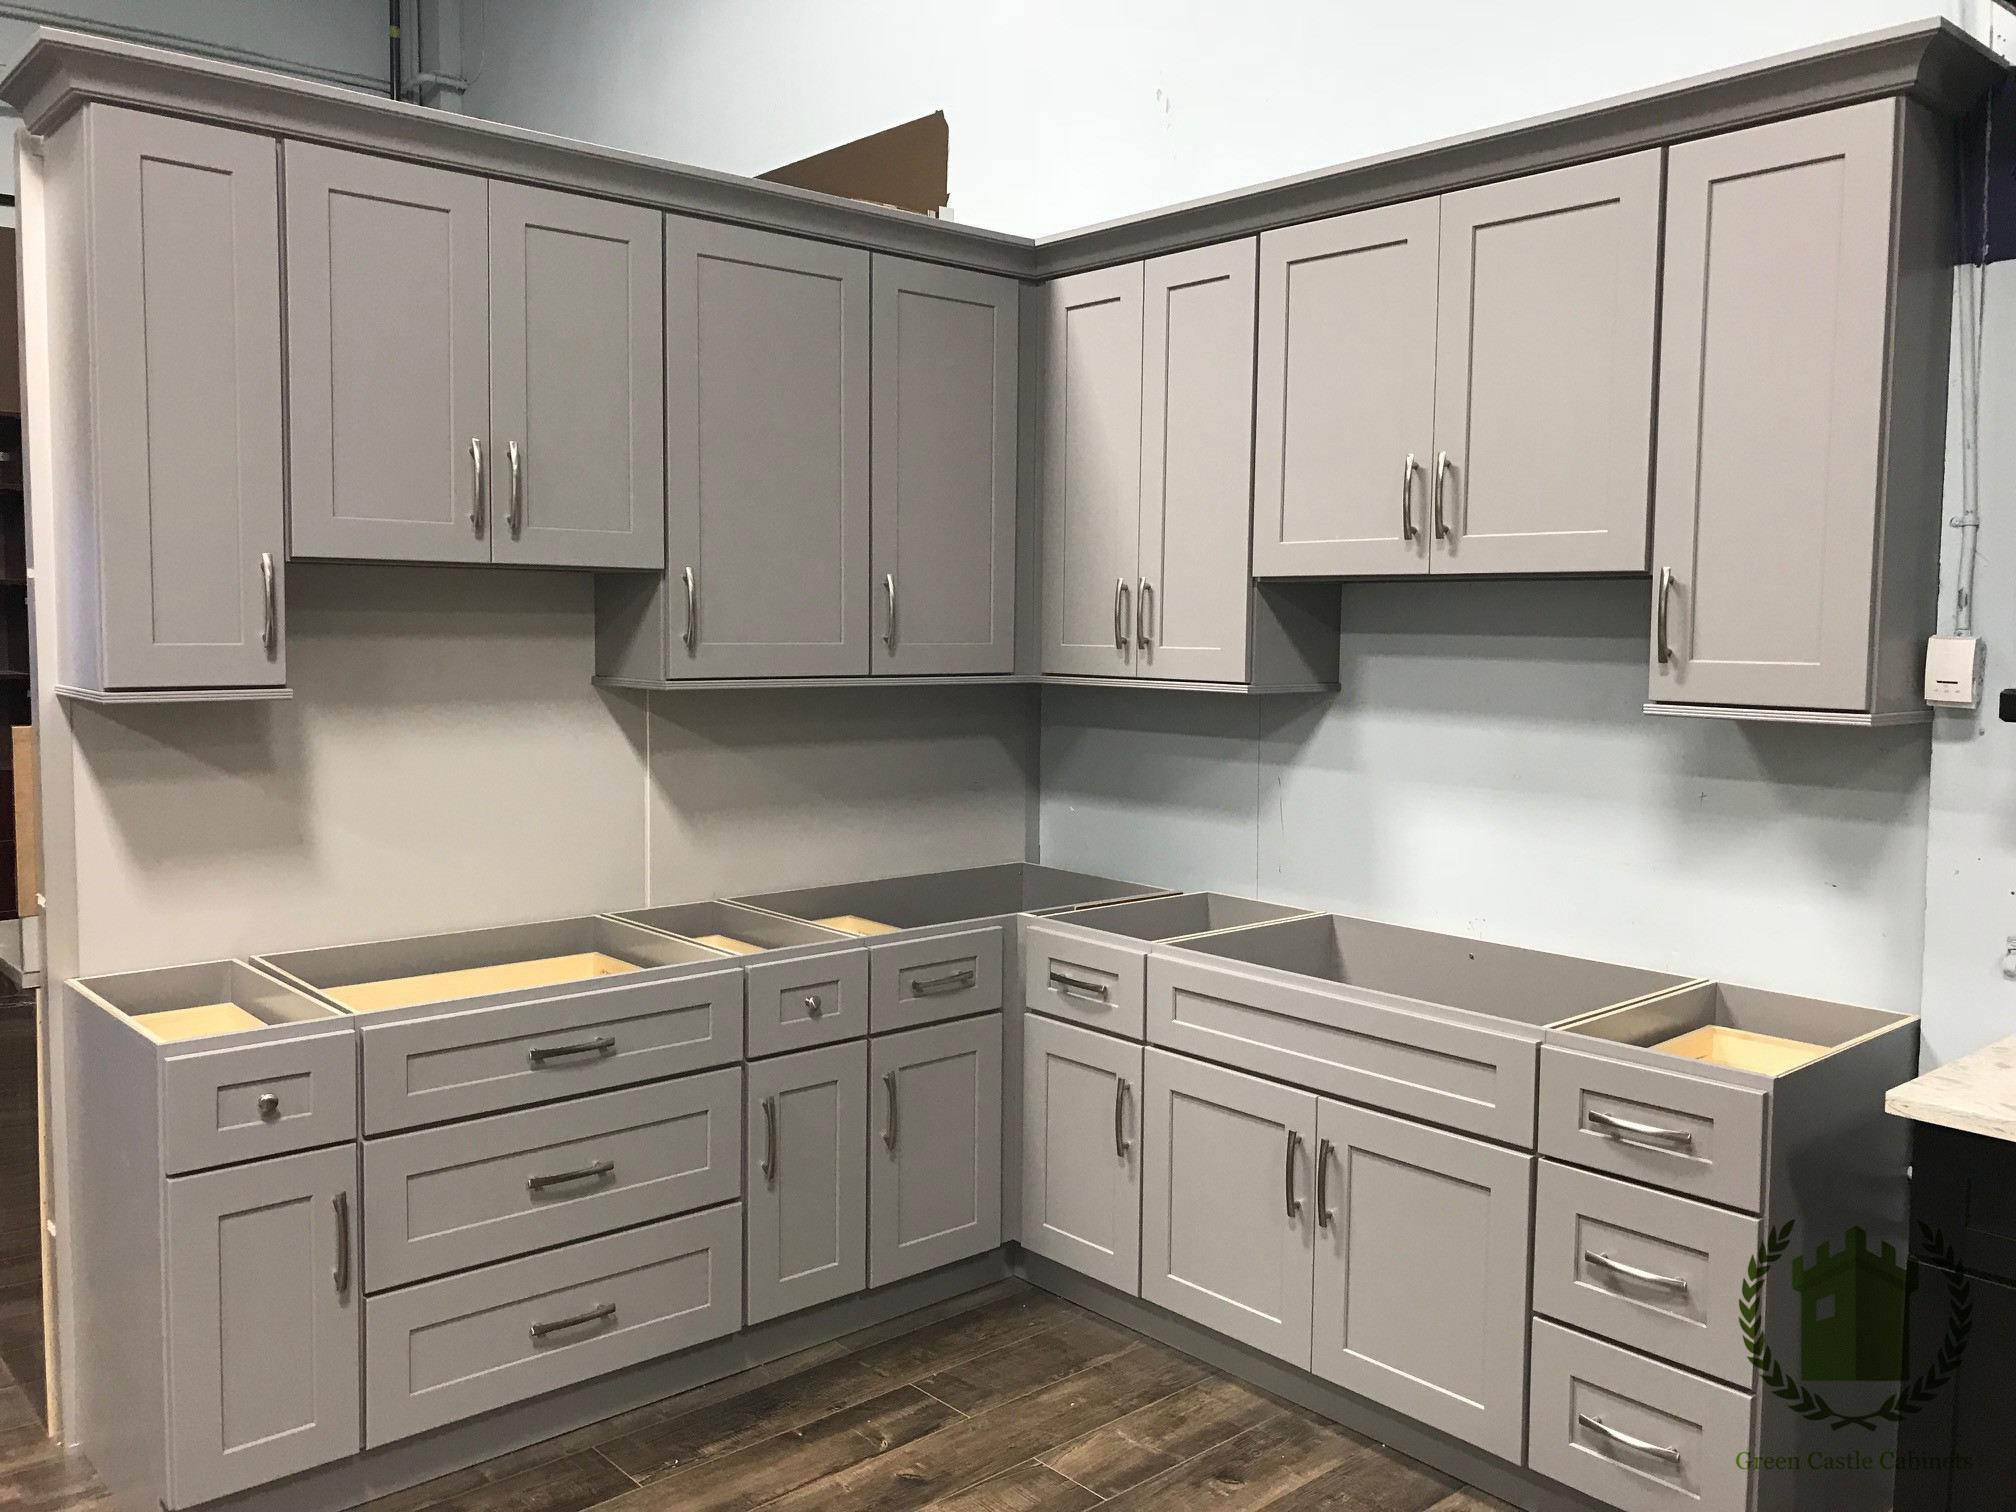 kitchen george in custom customizable capital prince millwork northern cabinetry cabinets products ltd wood